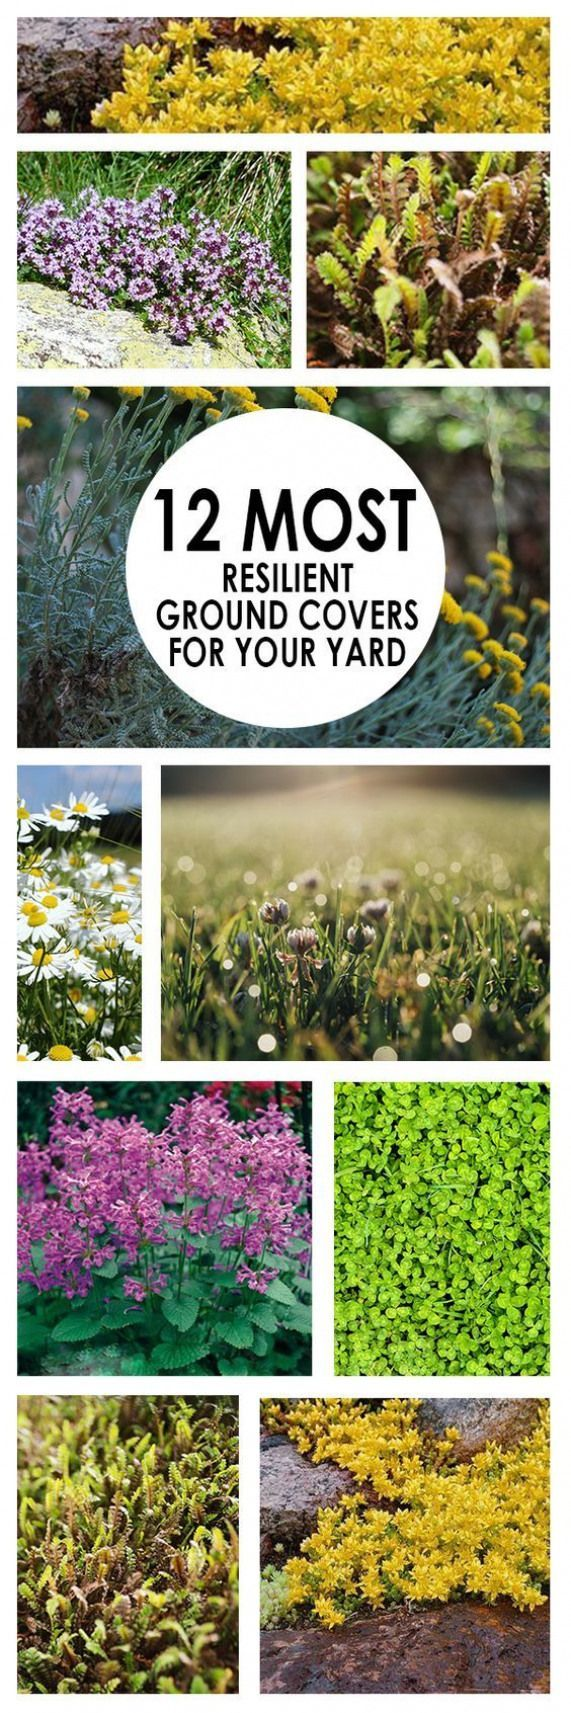 Ground cover ideas plants for ground cover popular pin gardening ground cover options outdoor living landscaping ideas cover ideas plants for ground cover popular pin gardening ground cover options outdoor living landscaping ideas